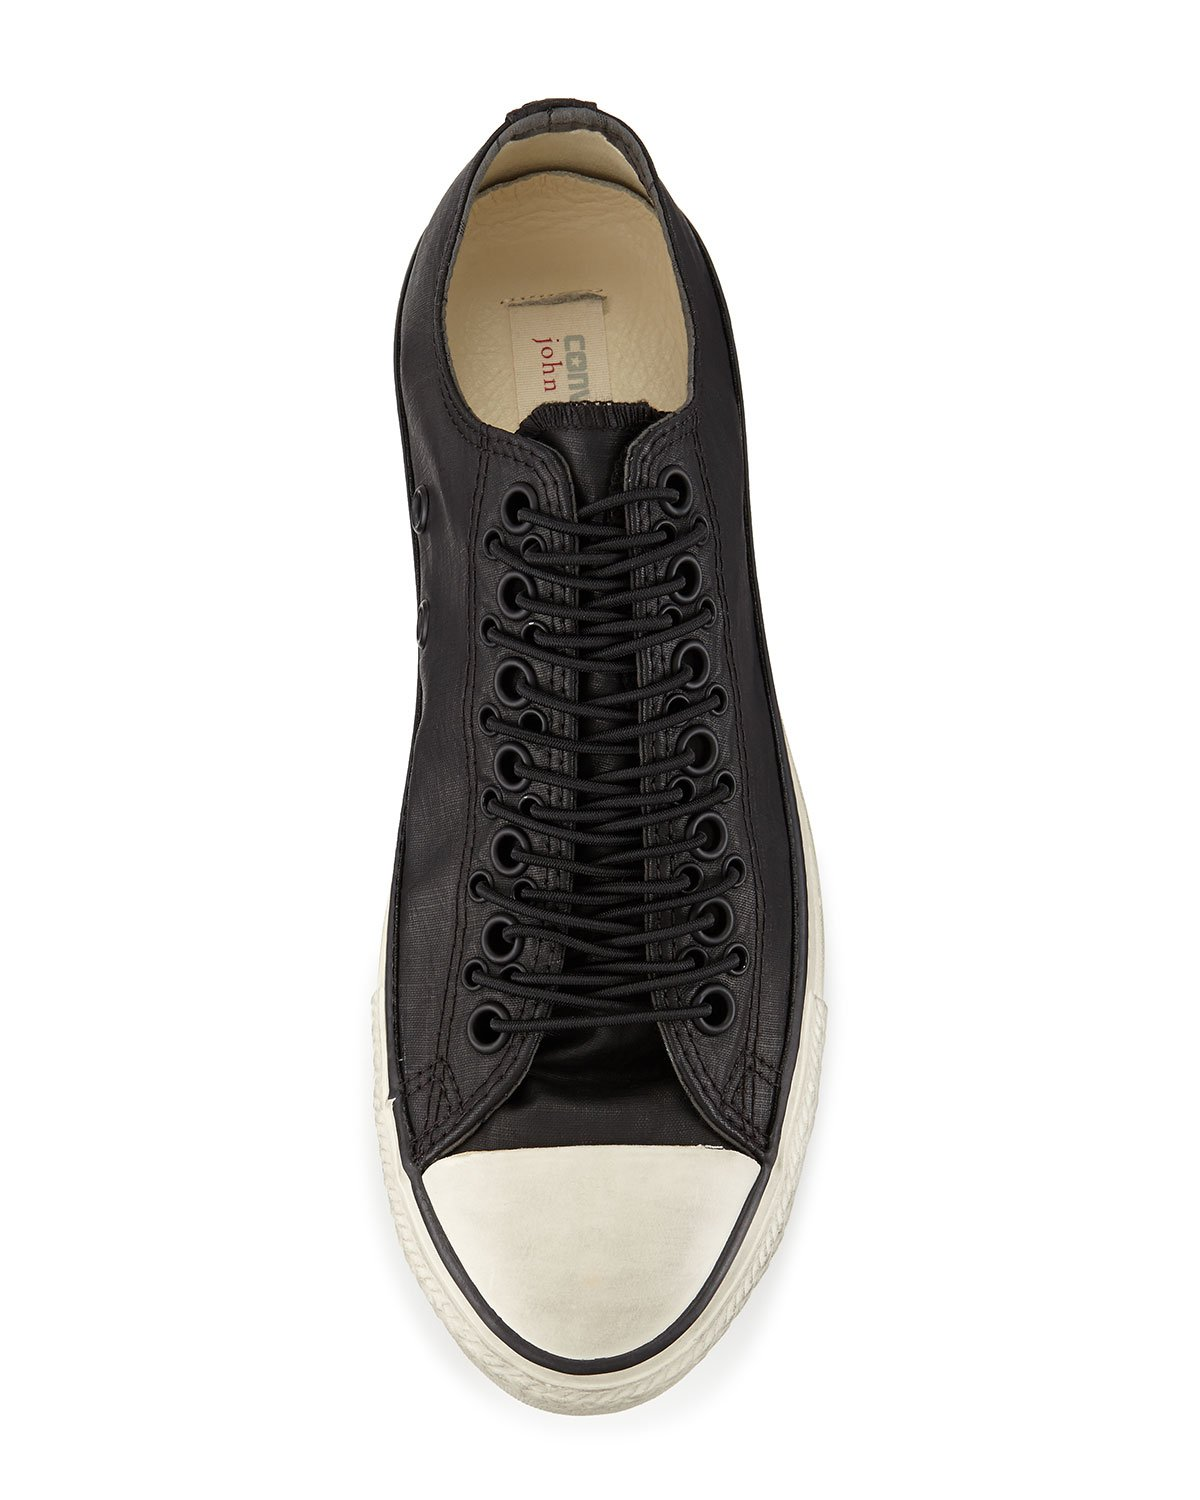 e7d072d85092 closeout converse x john varvatos multi eyelet shoes 06343 4b6a9  usa  gallery. previously sold at neiman marcus mens john varvatos converse 21664  57506